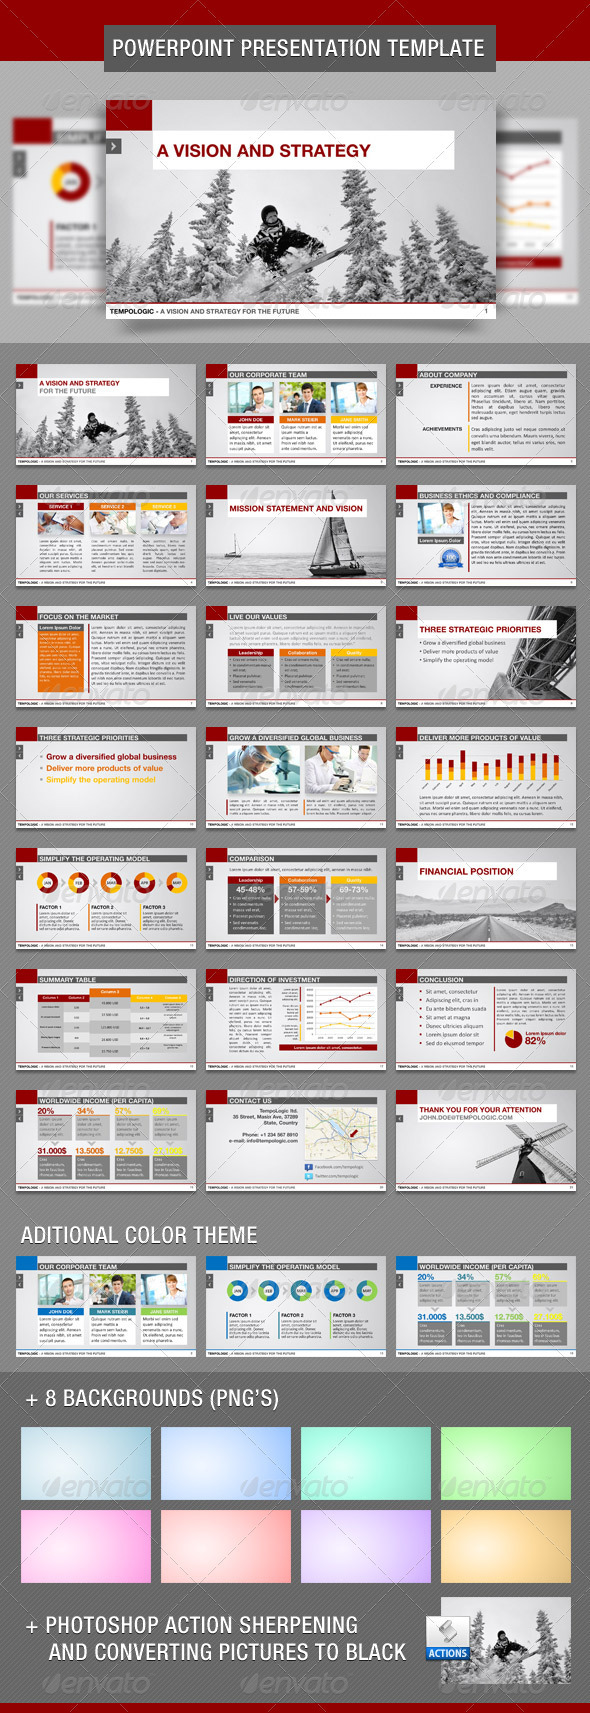 Download template microsoft powerpoint 2007 free software - Free download ms office powerpoint 2007 ...